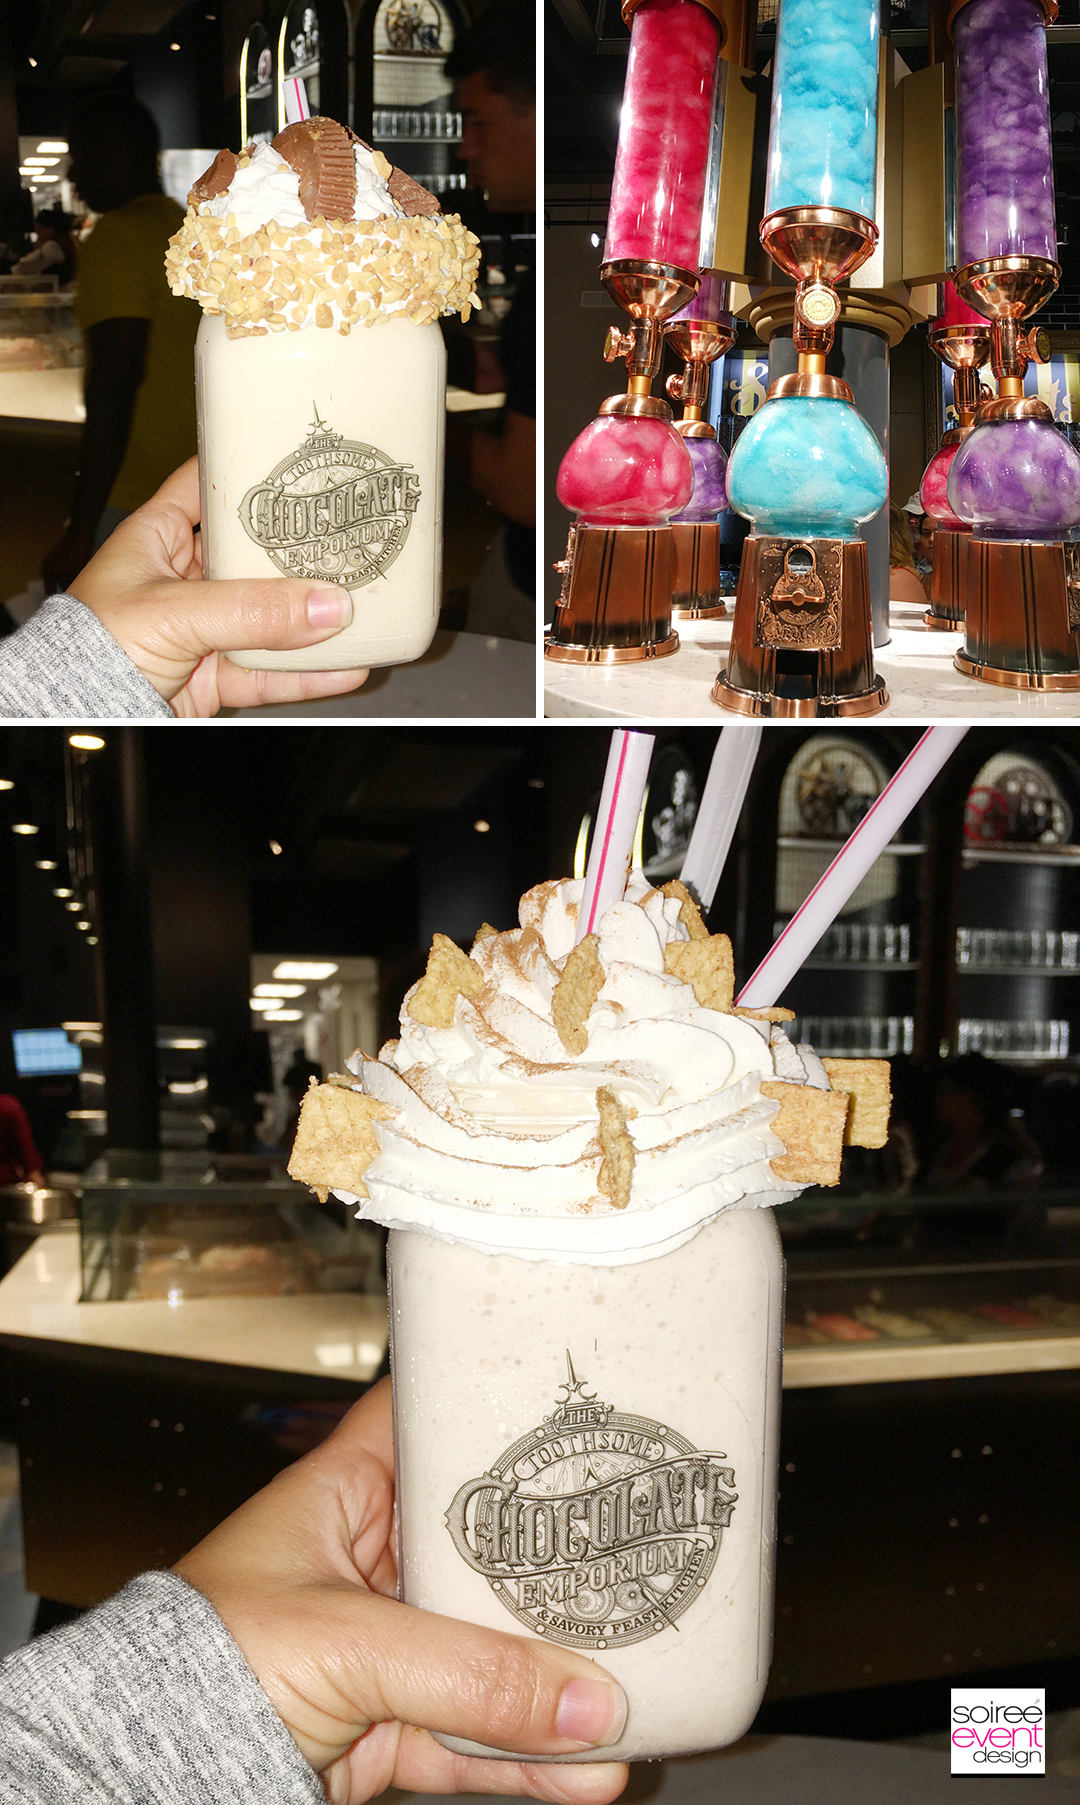 toothsome-chocolate-emporium-milkshakes